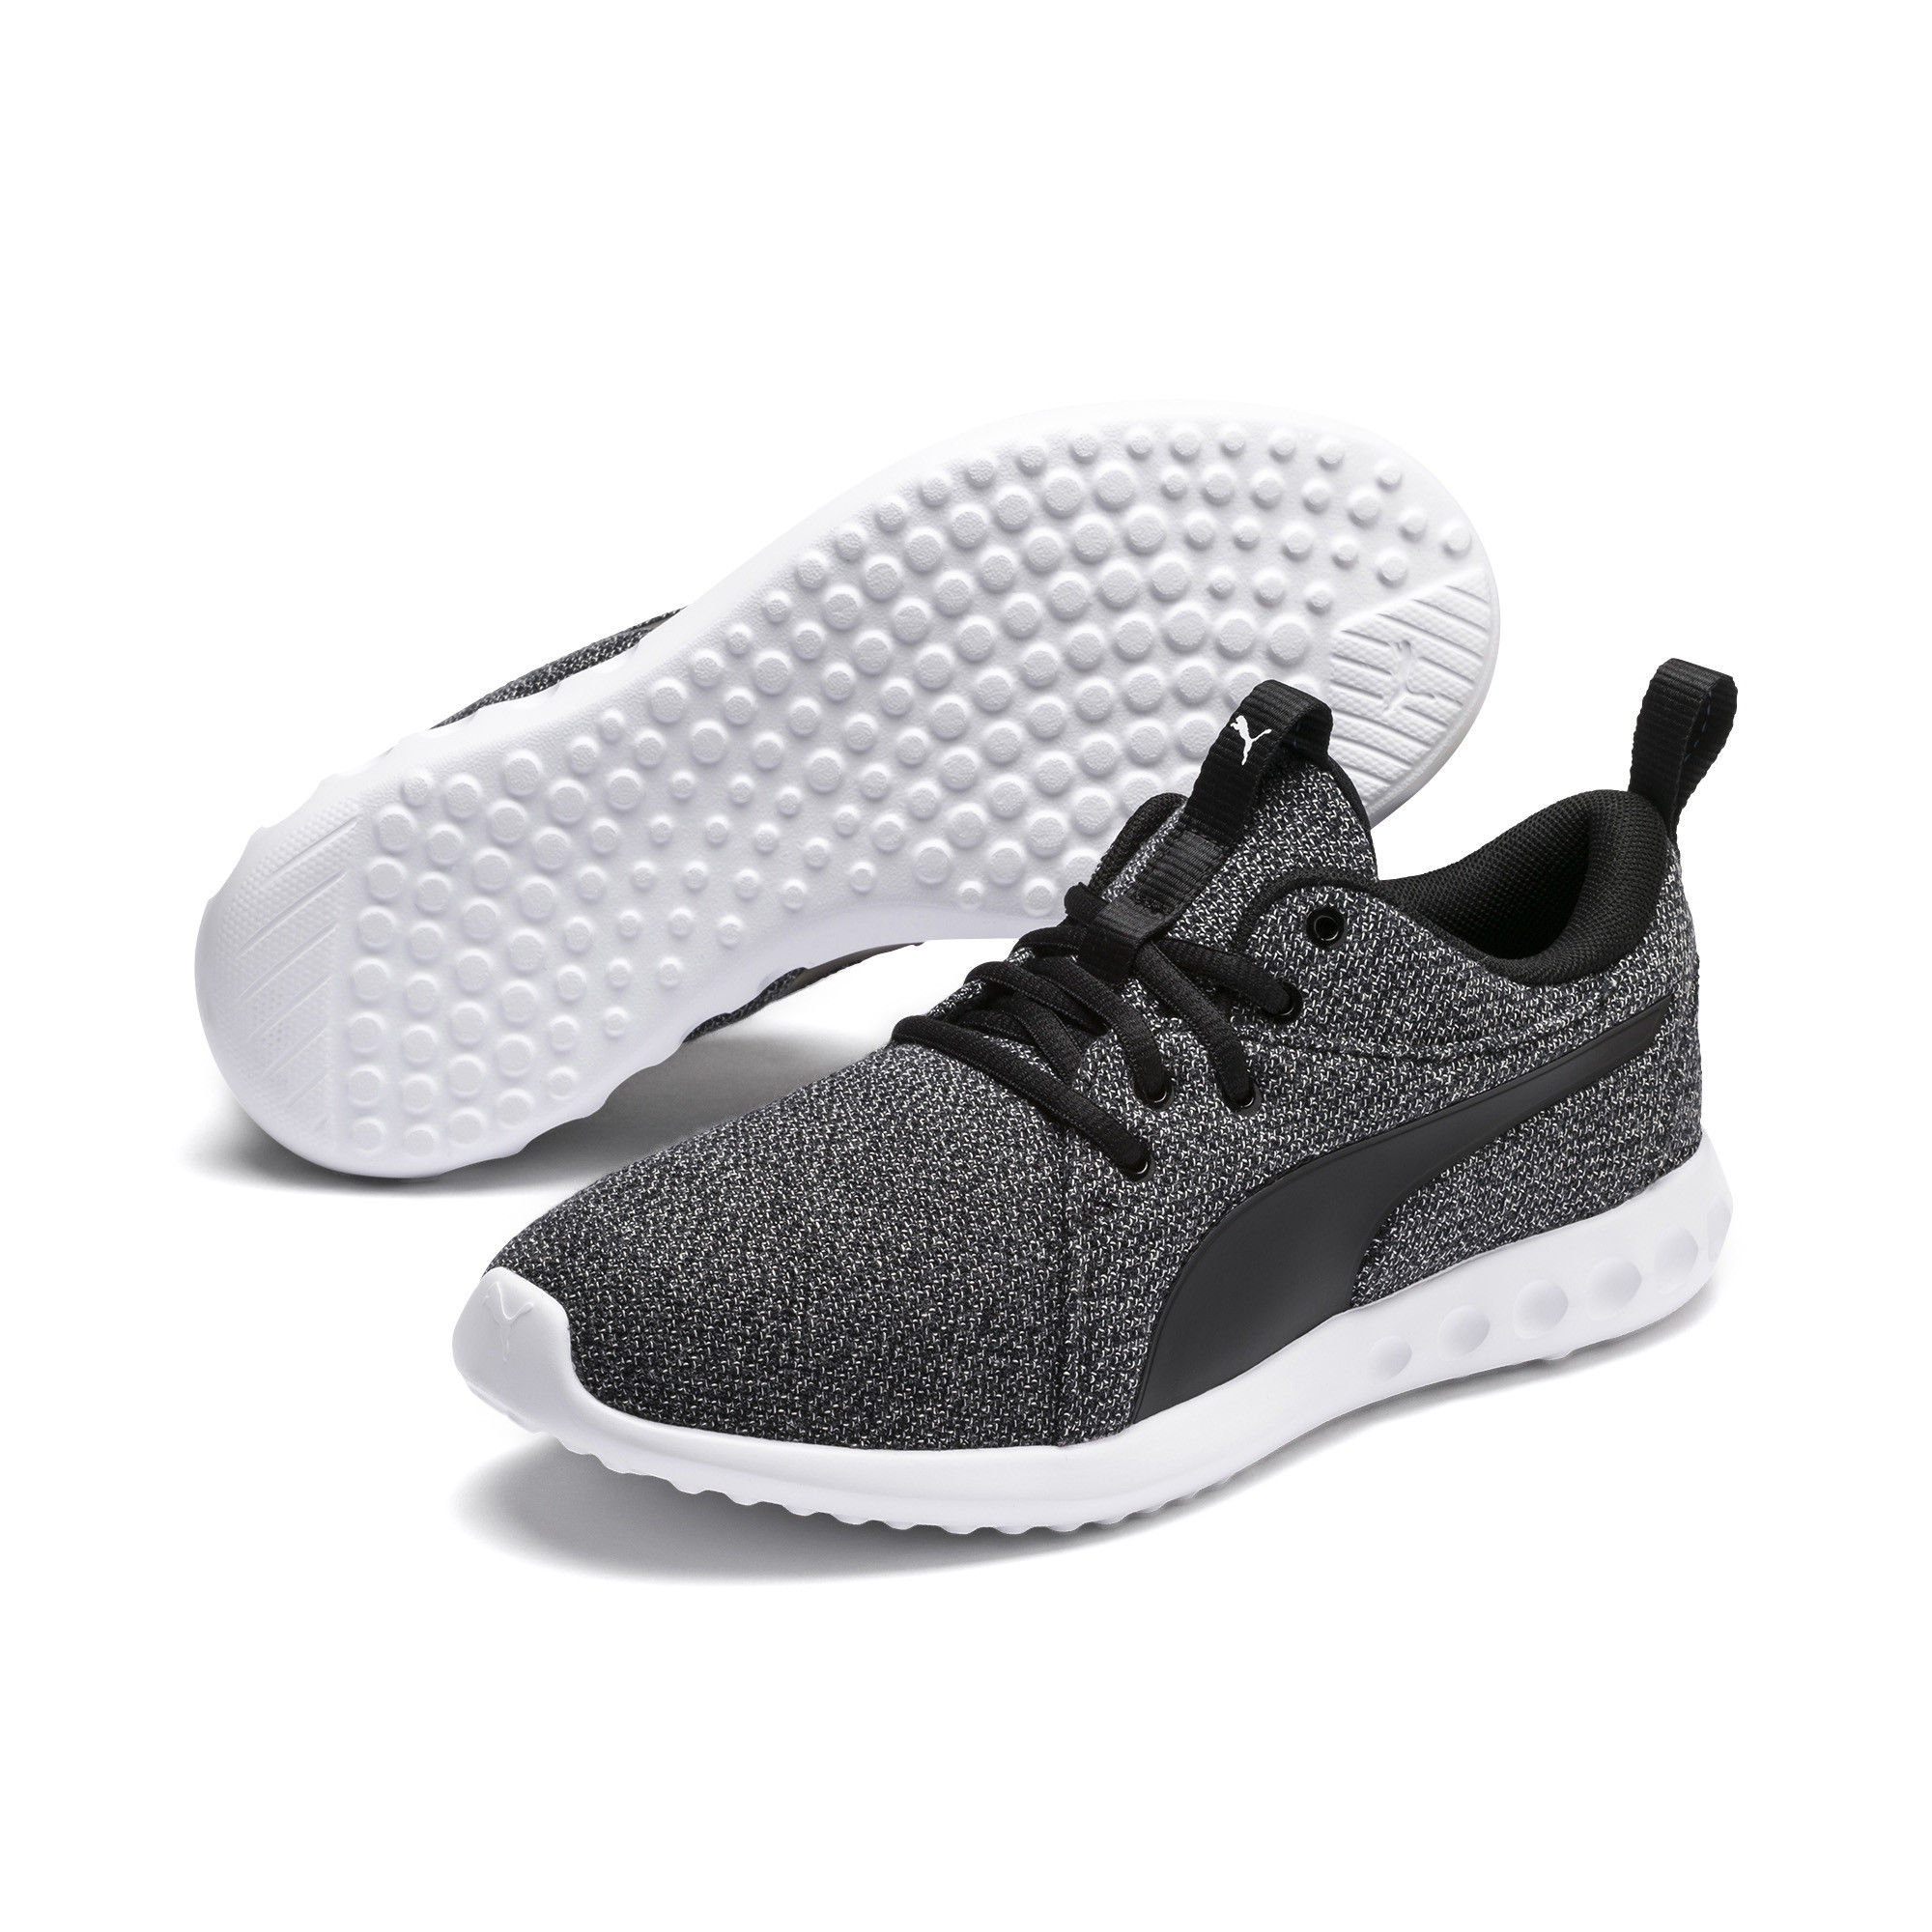 PUMA-Women-039-s-Carson-2-Knit-Running-Shoes